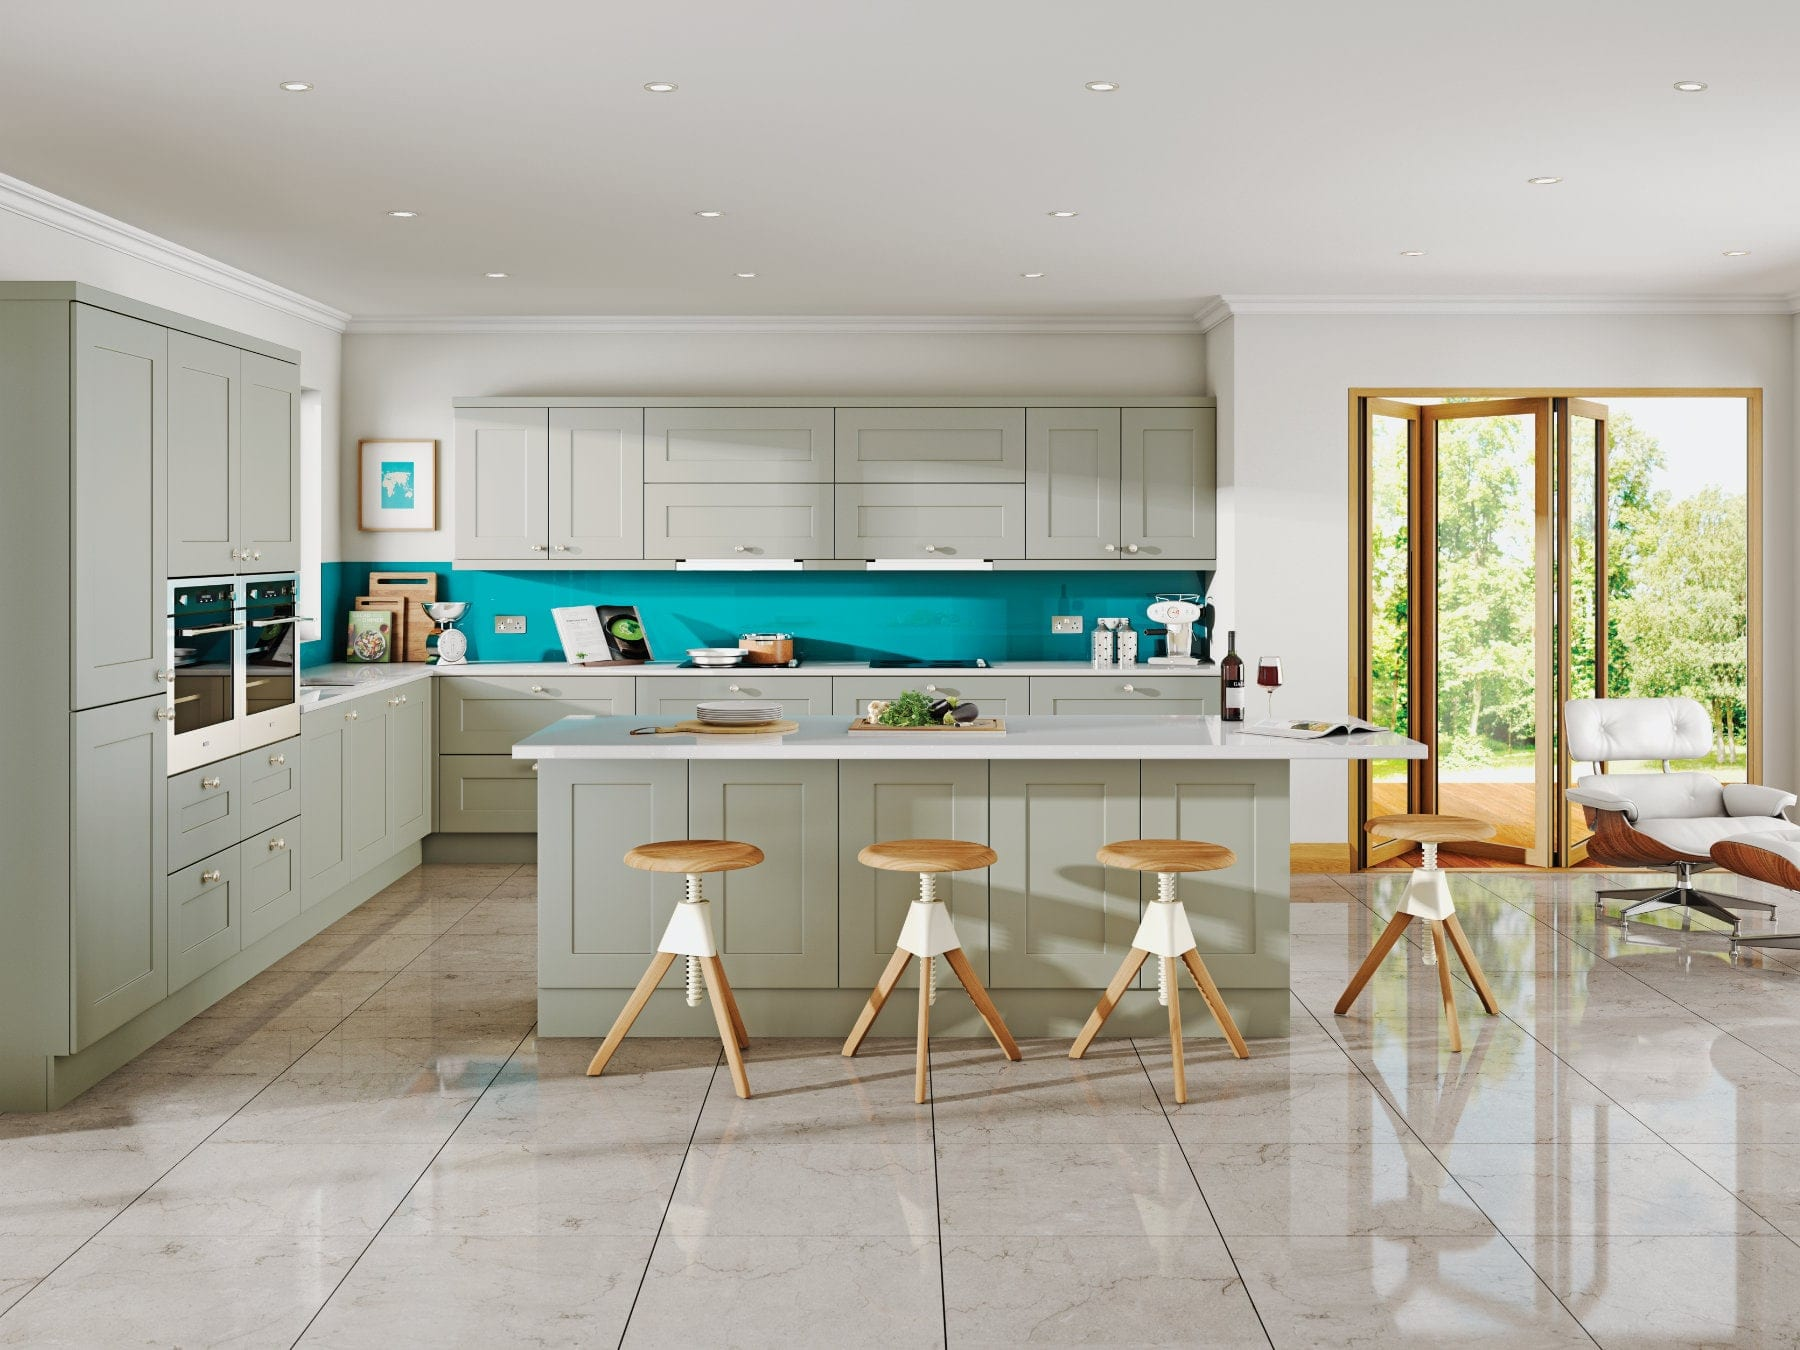 Jjo Solent Dakar L-Shaped Open Plan Kitchen With Island   Right Choice Kitchens, South Wales